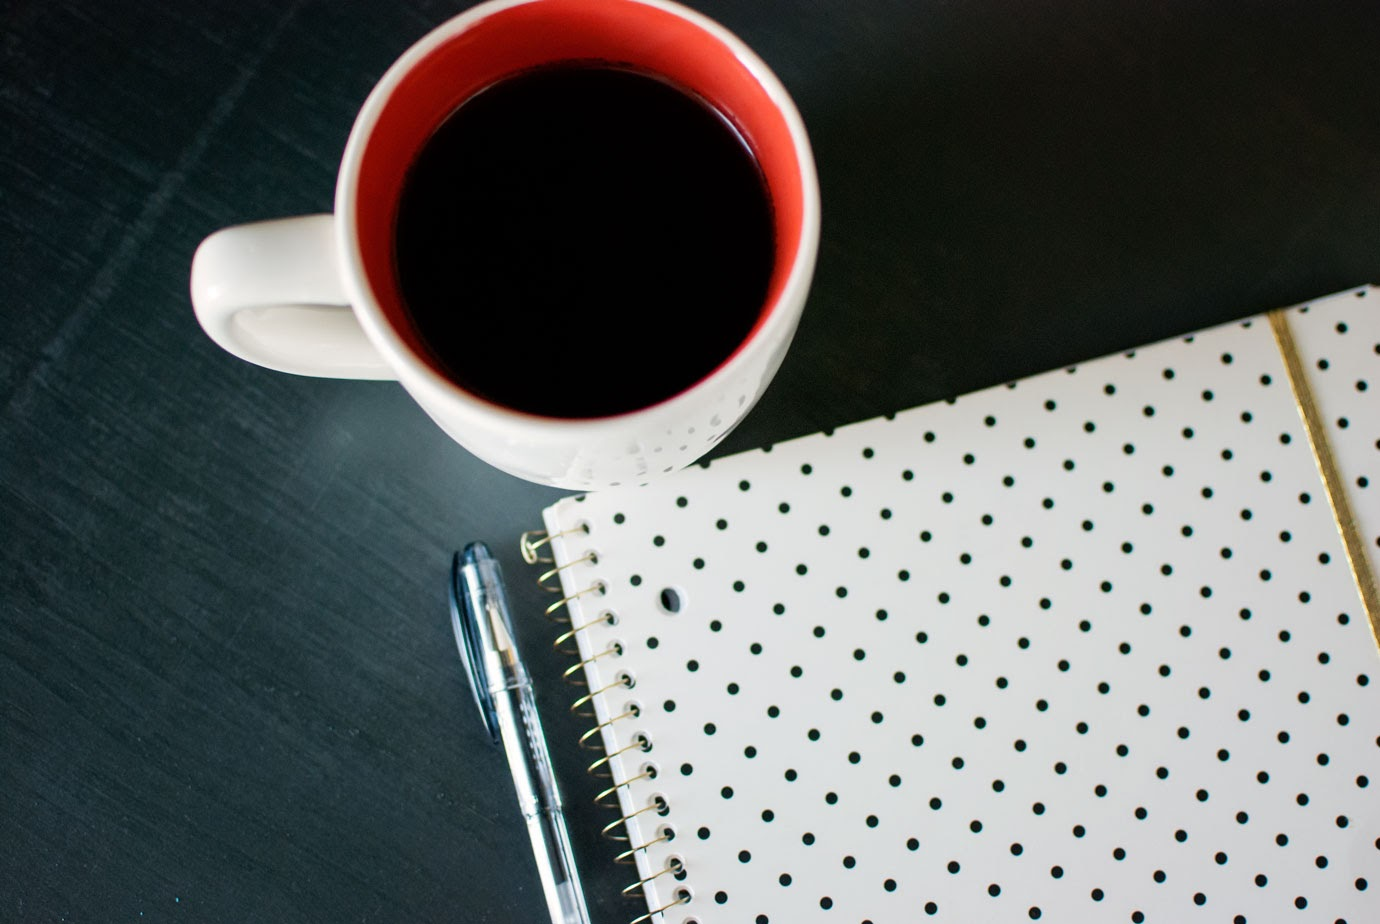 Coffee in a mug next to a black and white polka dot notebook and pen